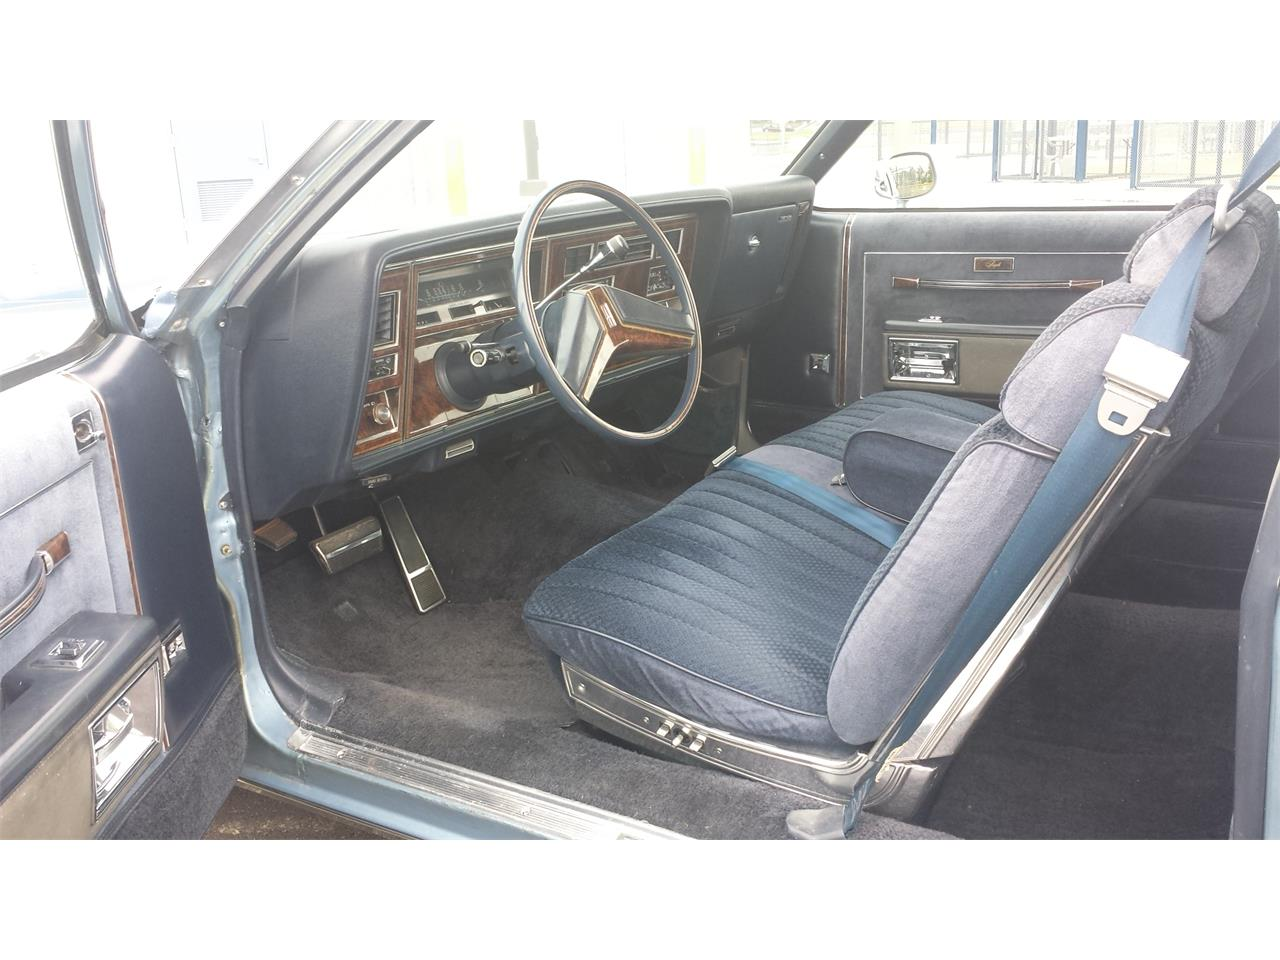 Large Picture of '81 Oldsmobile Delta 88 Royale - $9,750.00 Offered by a Private Seller - Q7LZ